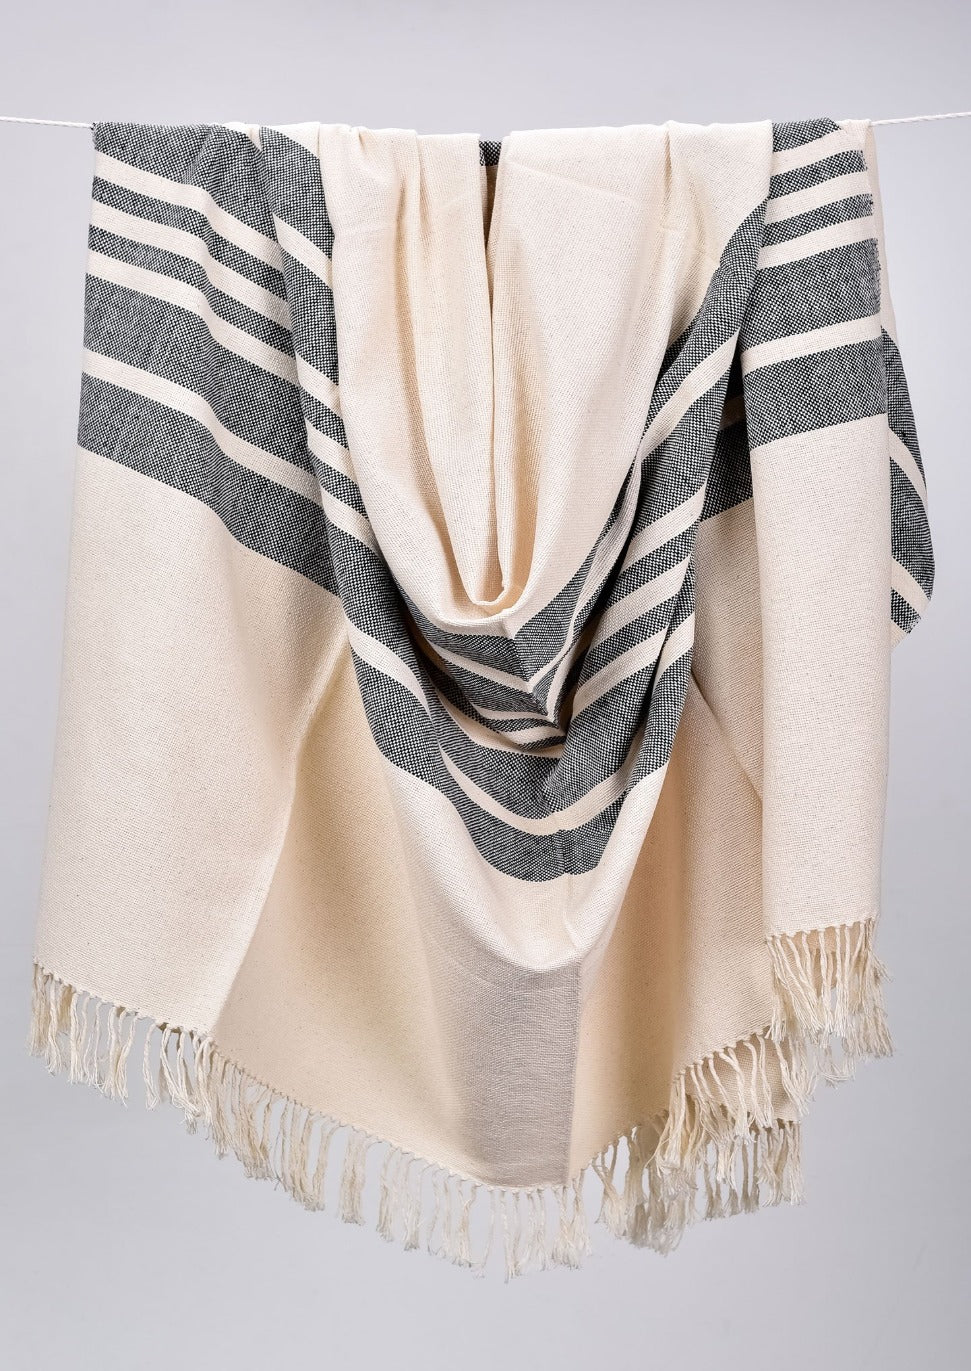 Monochromatic Cotton Throws & Blankets with Border Stripes